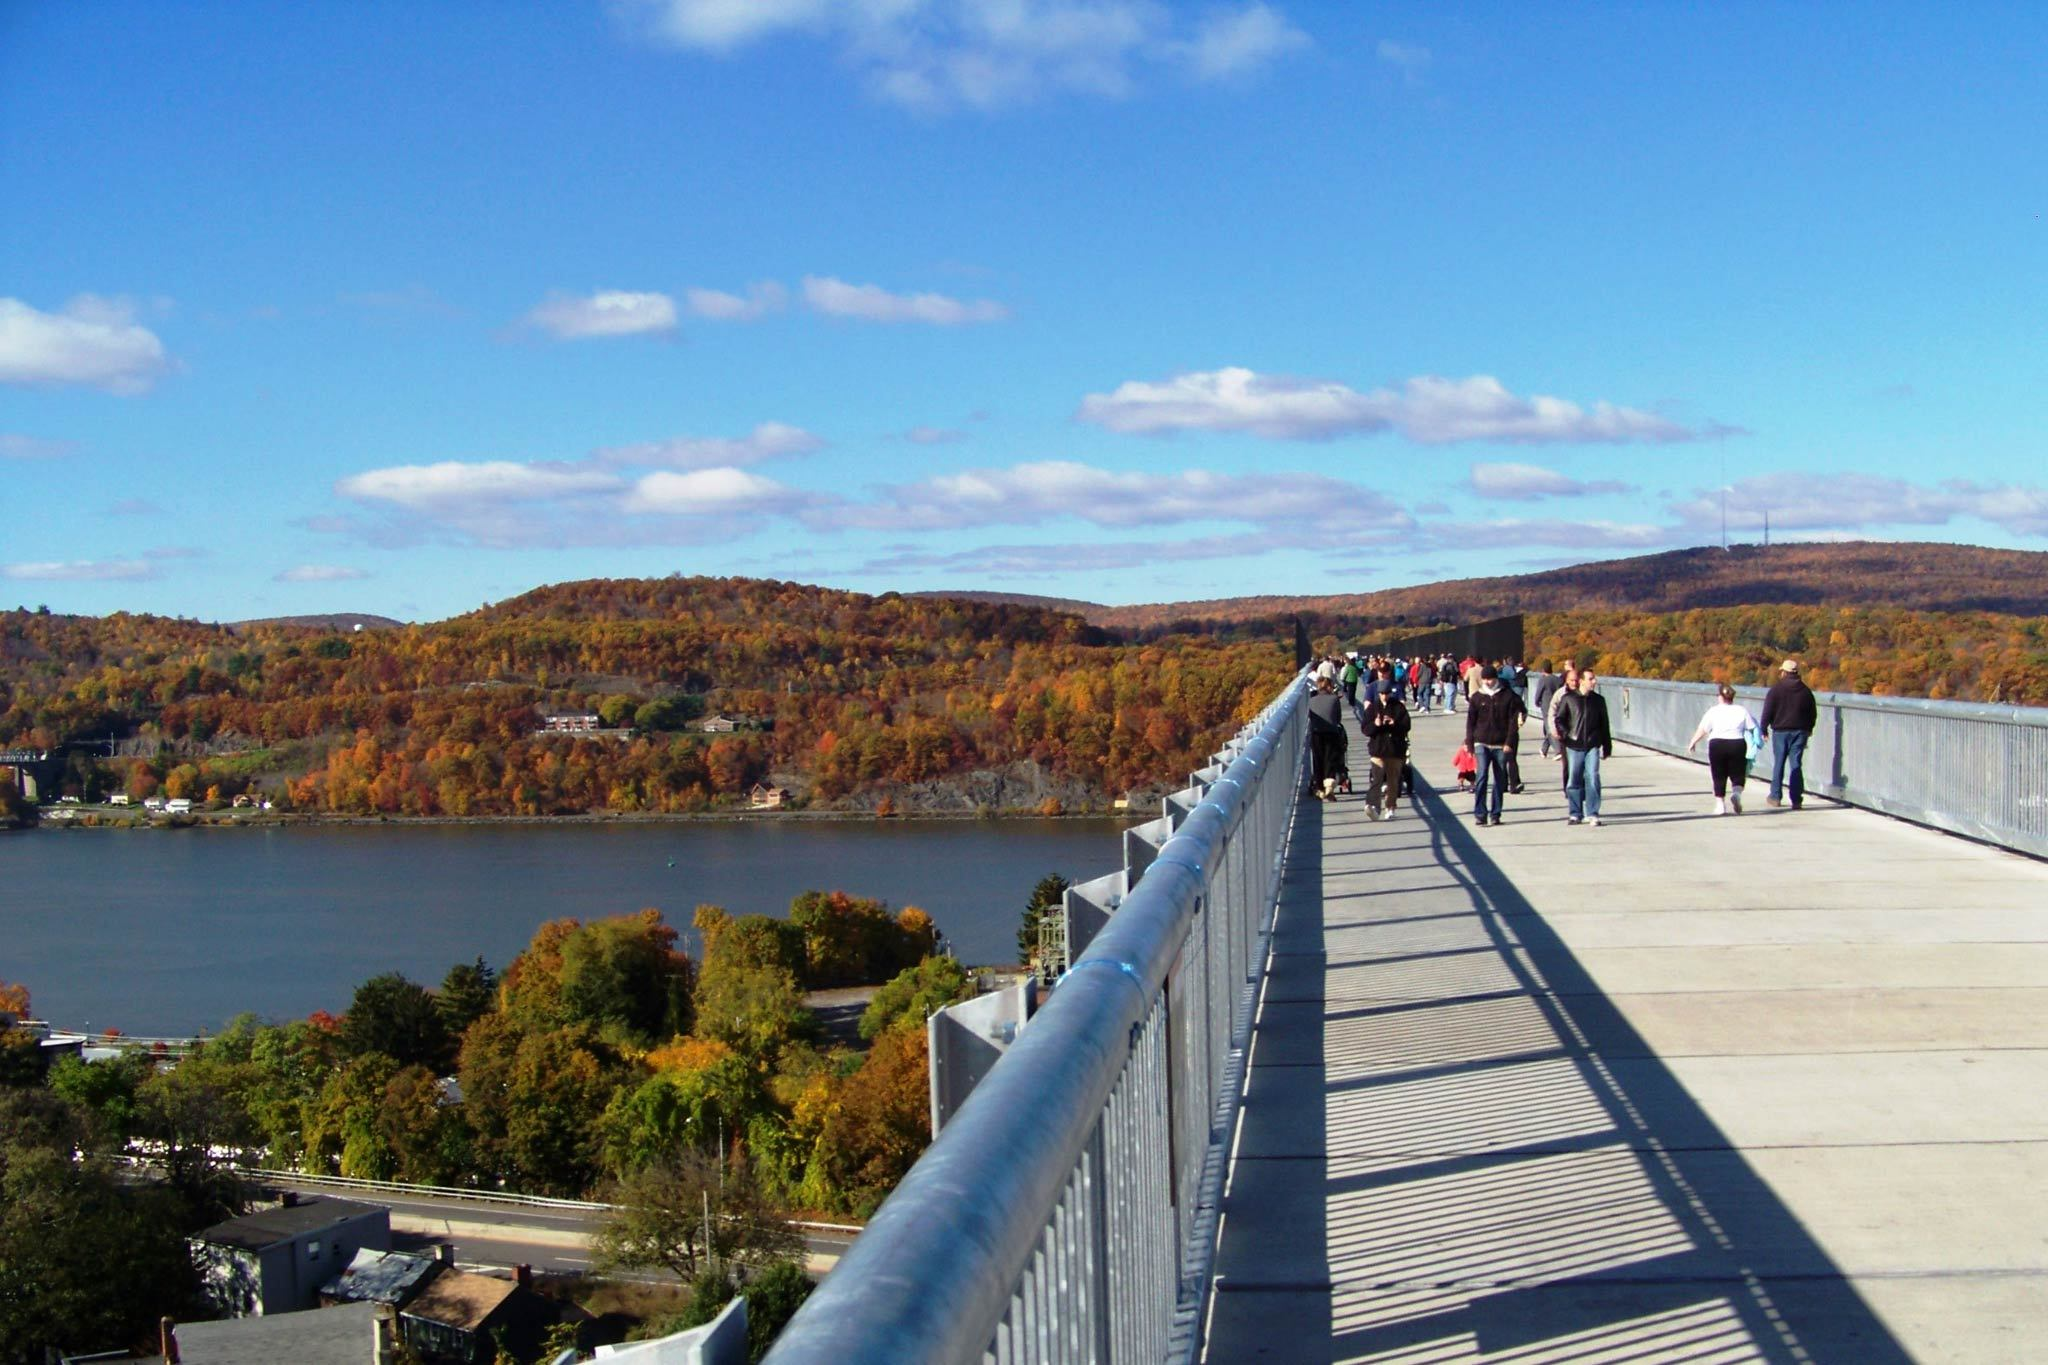 Go upstate to see the autumn leeeeeeaves (of red and gooooold)